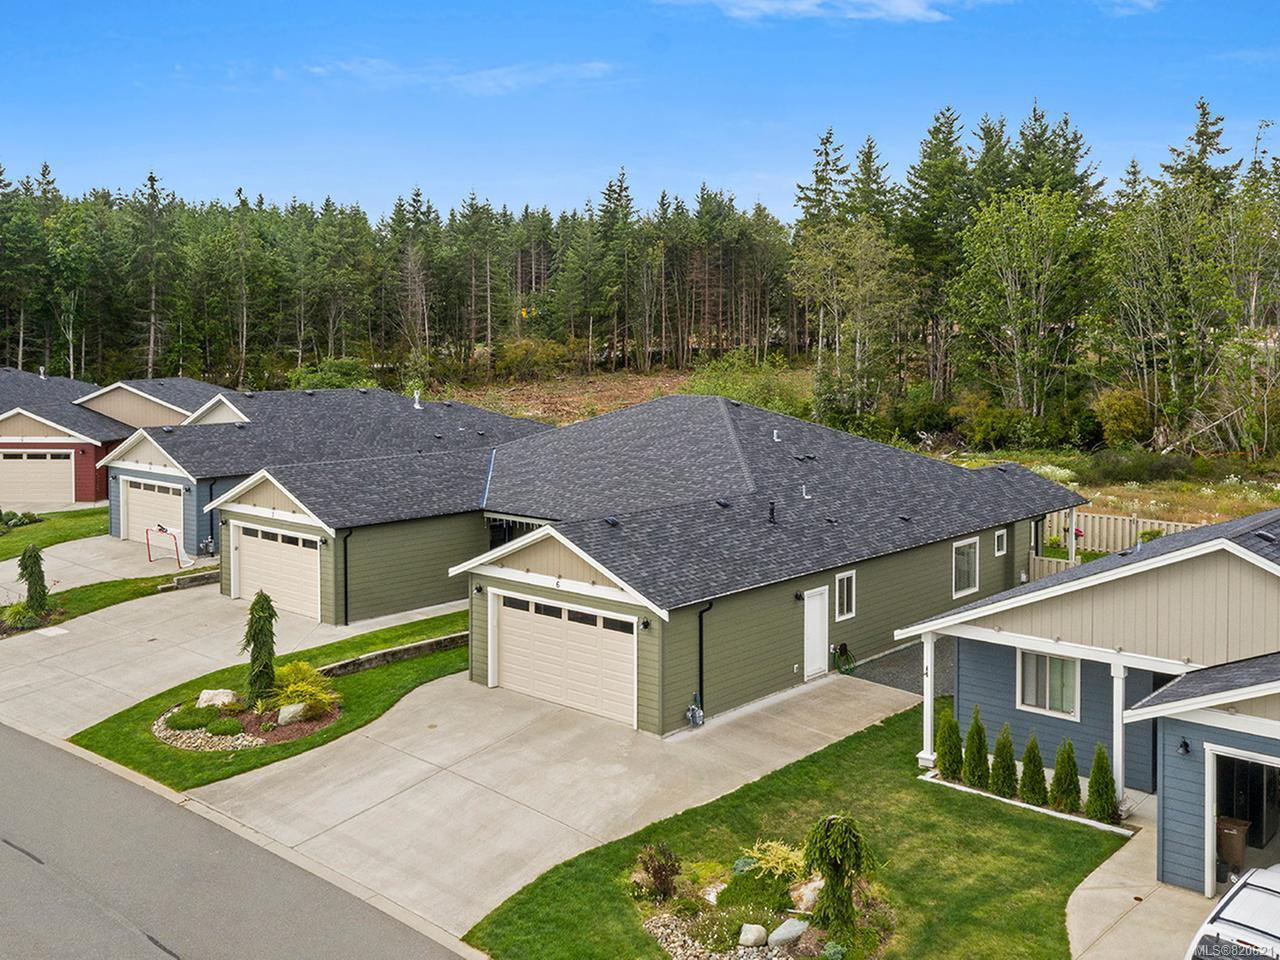 Main Photo: 6 301 Arizona Dr in CAMPBELL RIVER: CR Willow Point Row/Townhouse for sale (Campbell River)  : MLS®# 820621